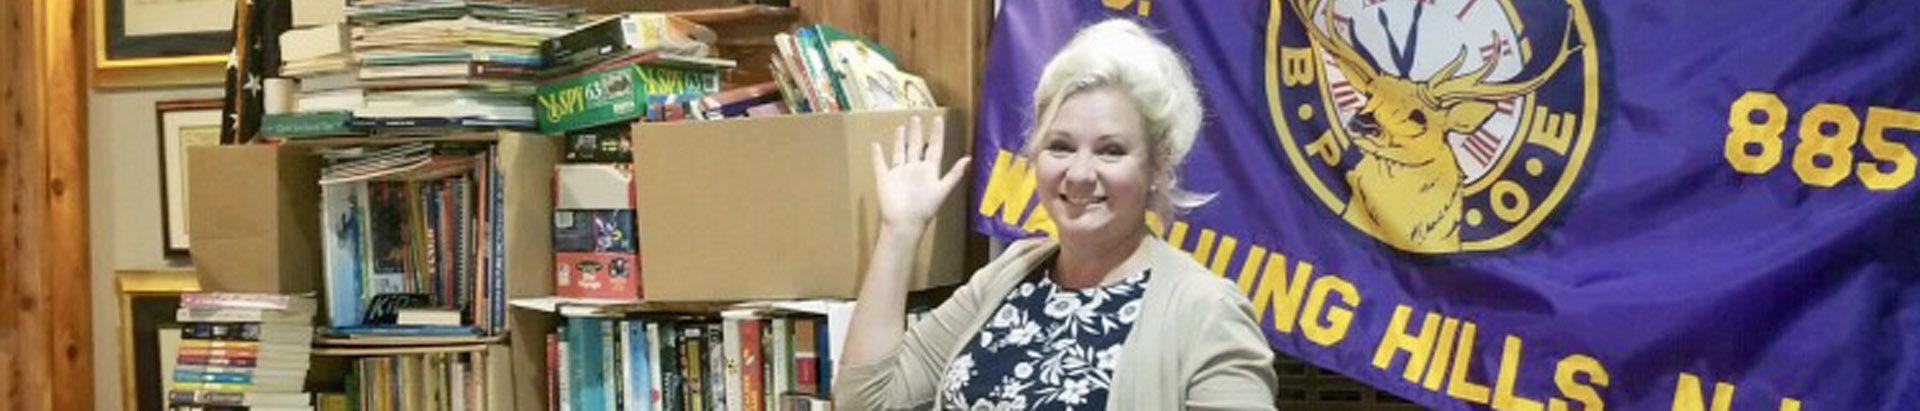 Candace standing in front of the book collection at Watchung Hills Elks Lodge 885